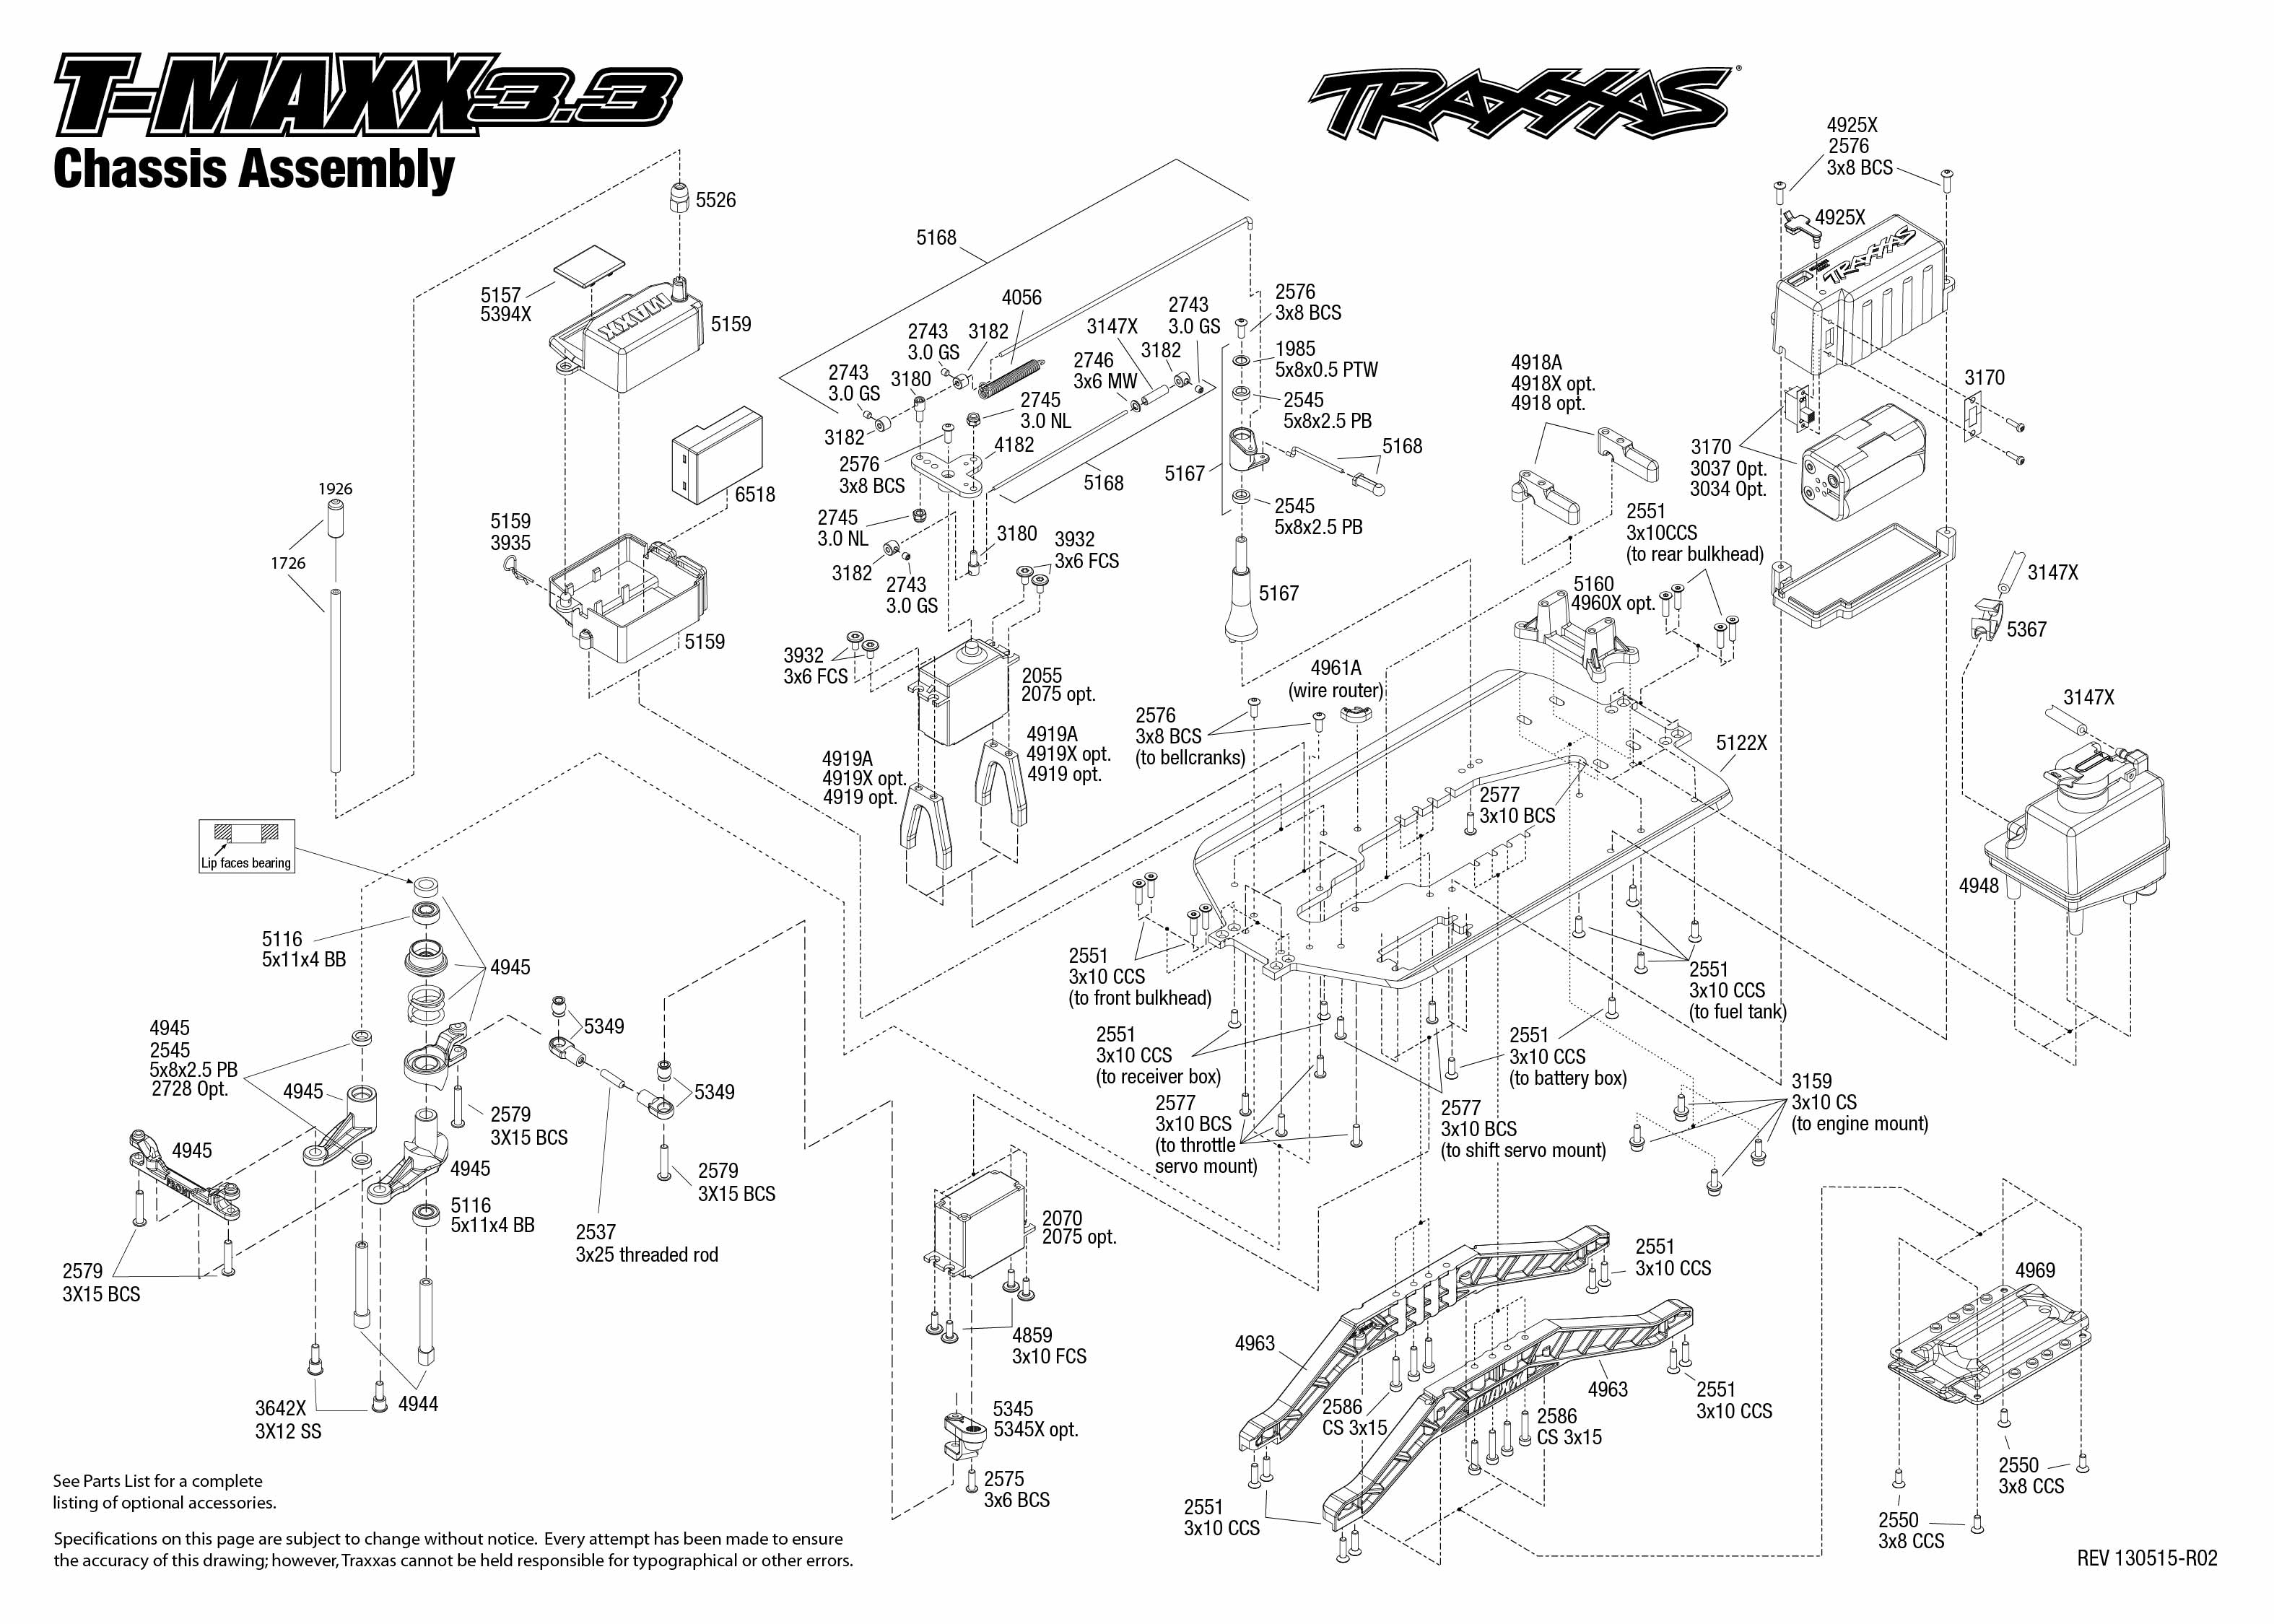 4907_Tmaxx33_TQi_explodedviews 130515_4907 Chassis Assembly traxxas 1 10 scale t maxx 3 3 4wd monster truck 4907 traxxas 6518 wiring diagram at reclaimingppi.co